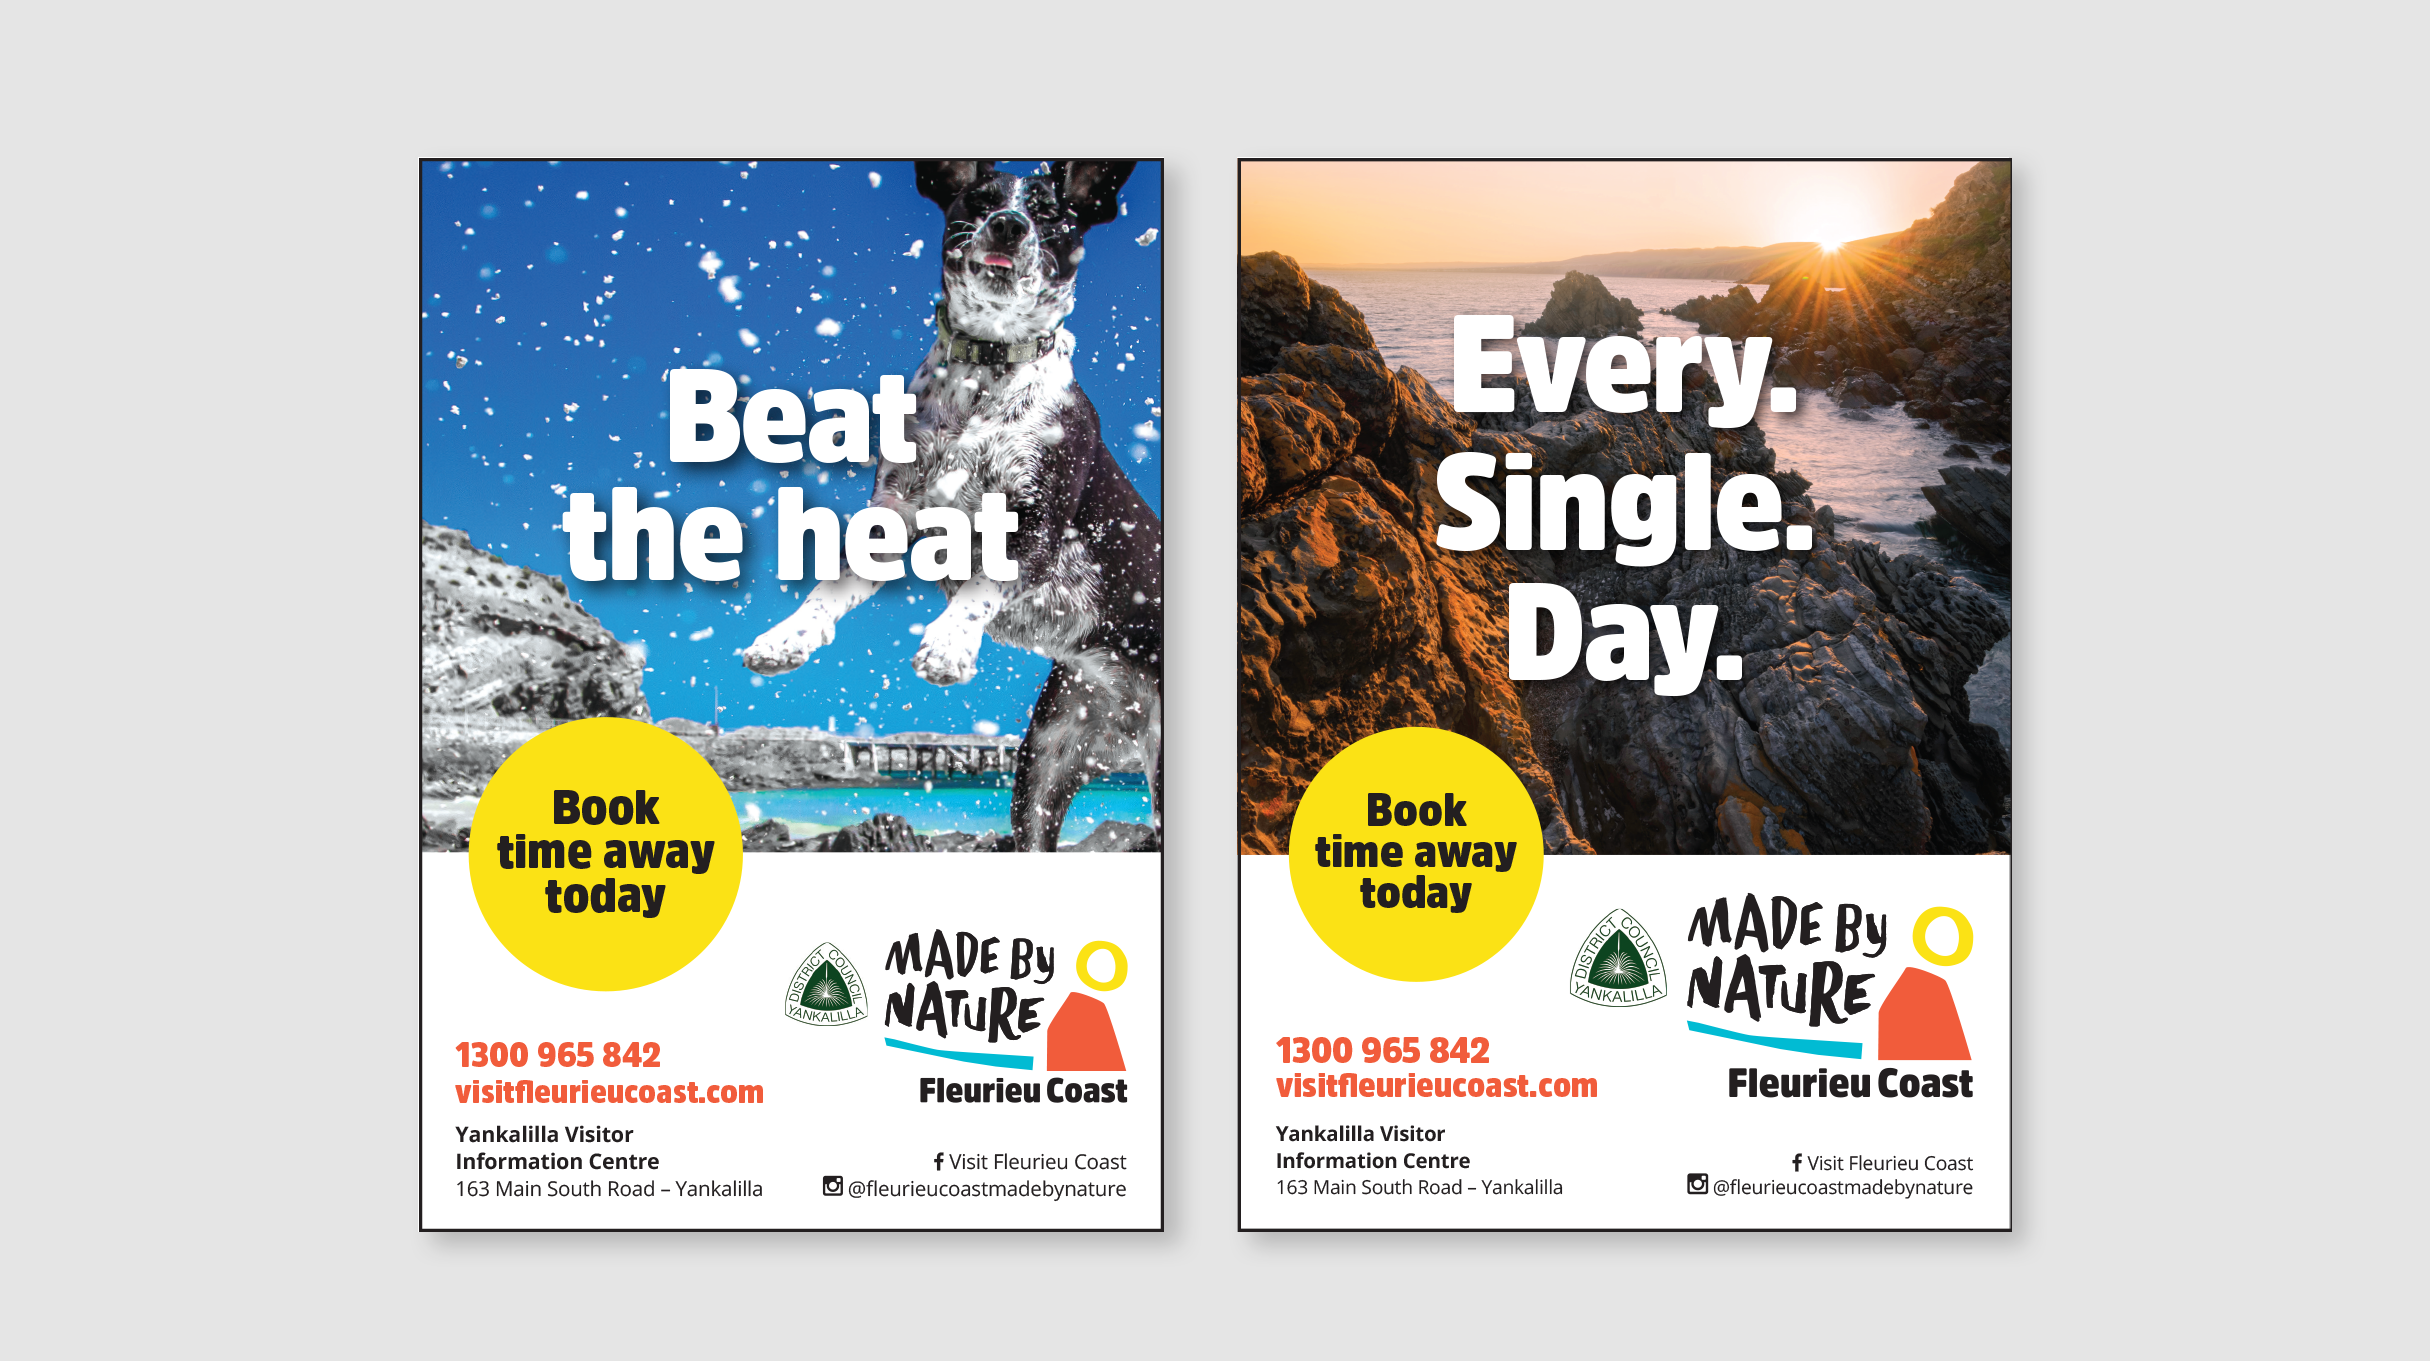 Made by Nature Fleurieu Coast logo posters - 'Beat the heat' (dog playing in the snow) and 'Every. Single. Day.' (Gorgeous seaside sunset)